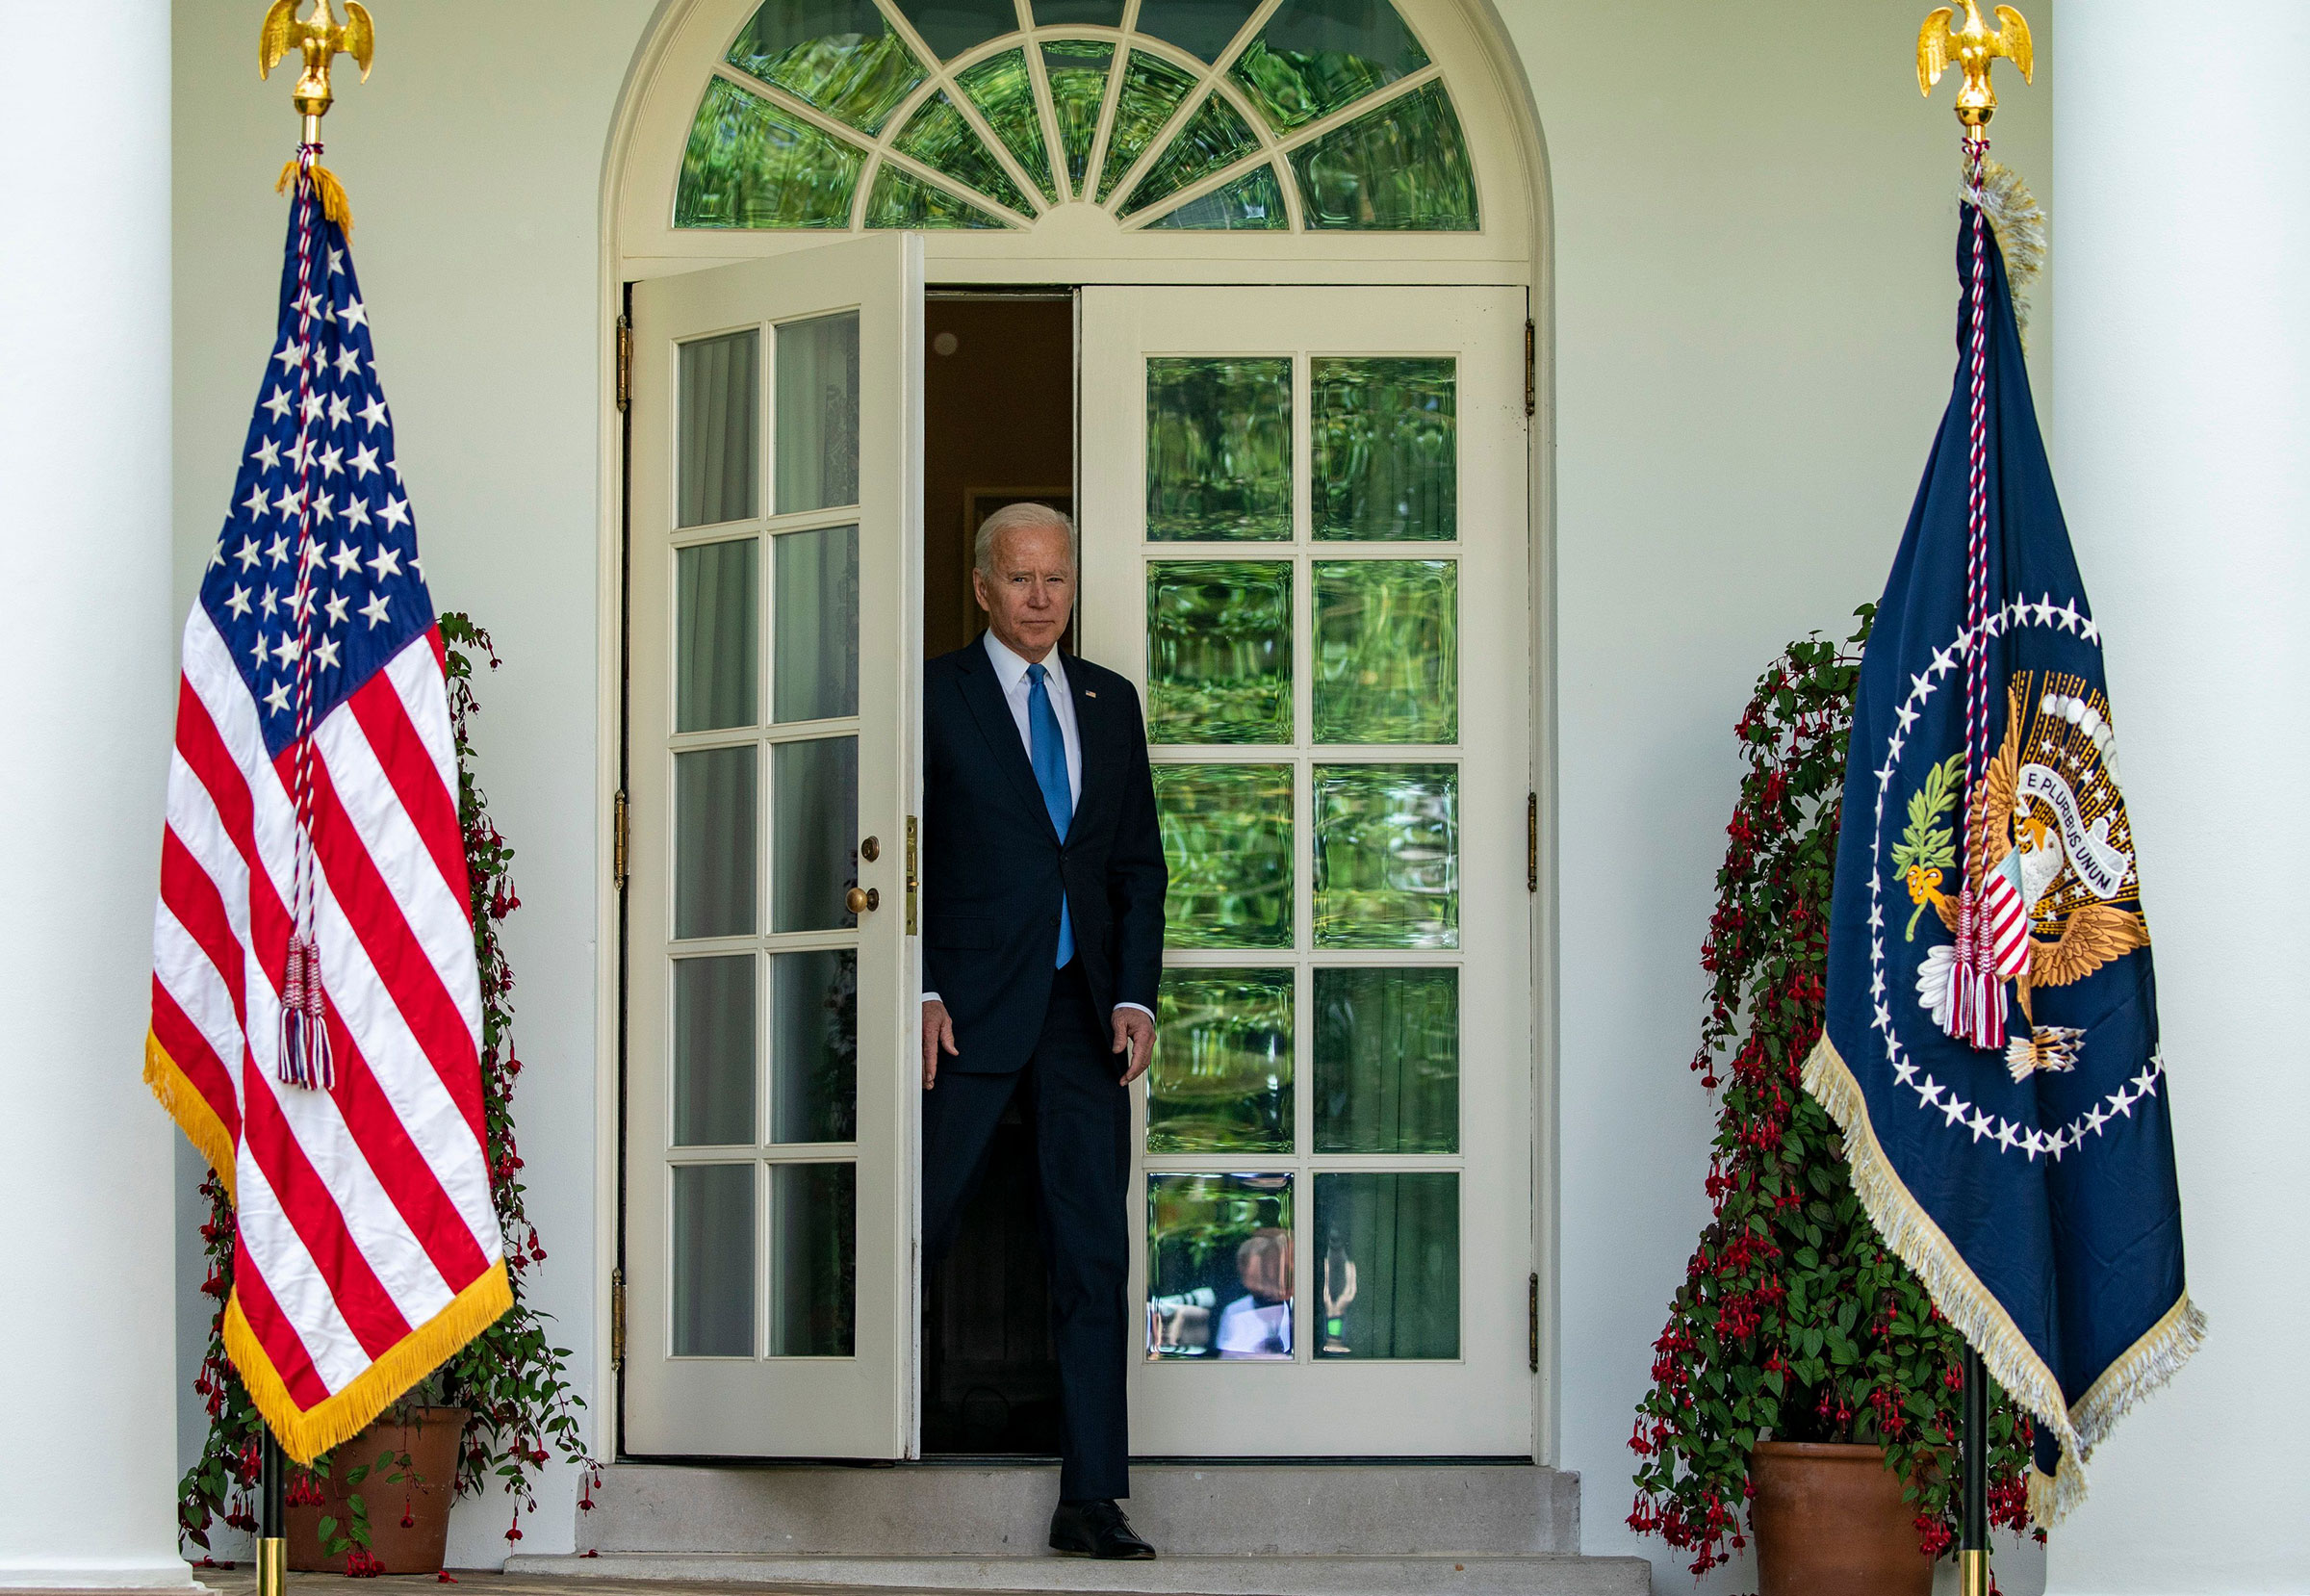 President Joe Biden enters the rose garden to give remarks May 13, 2021.